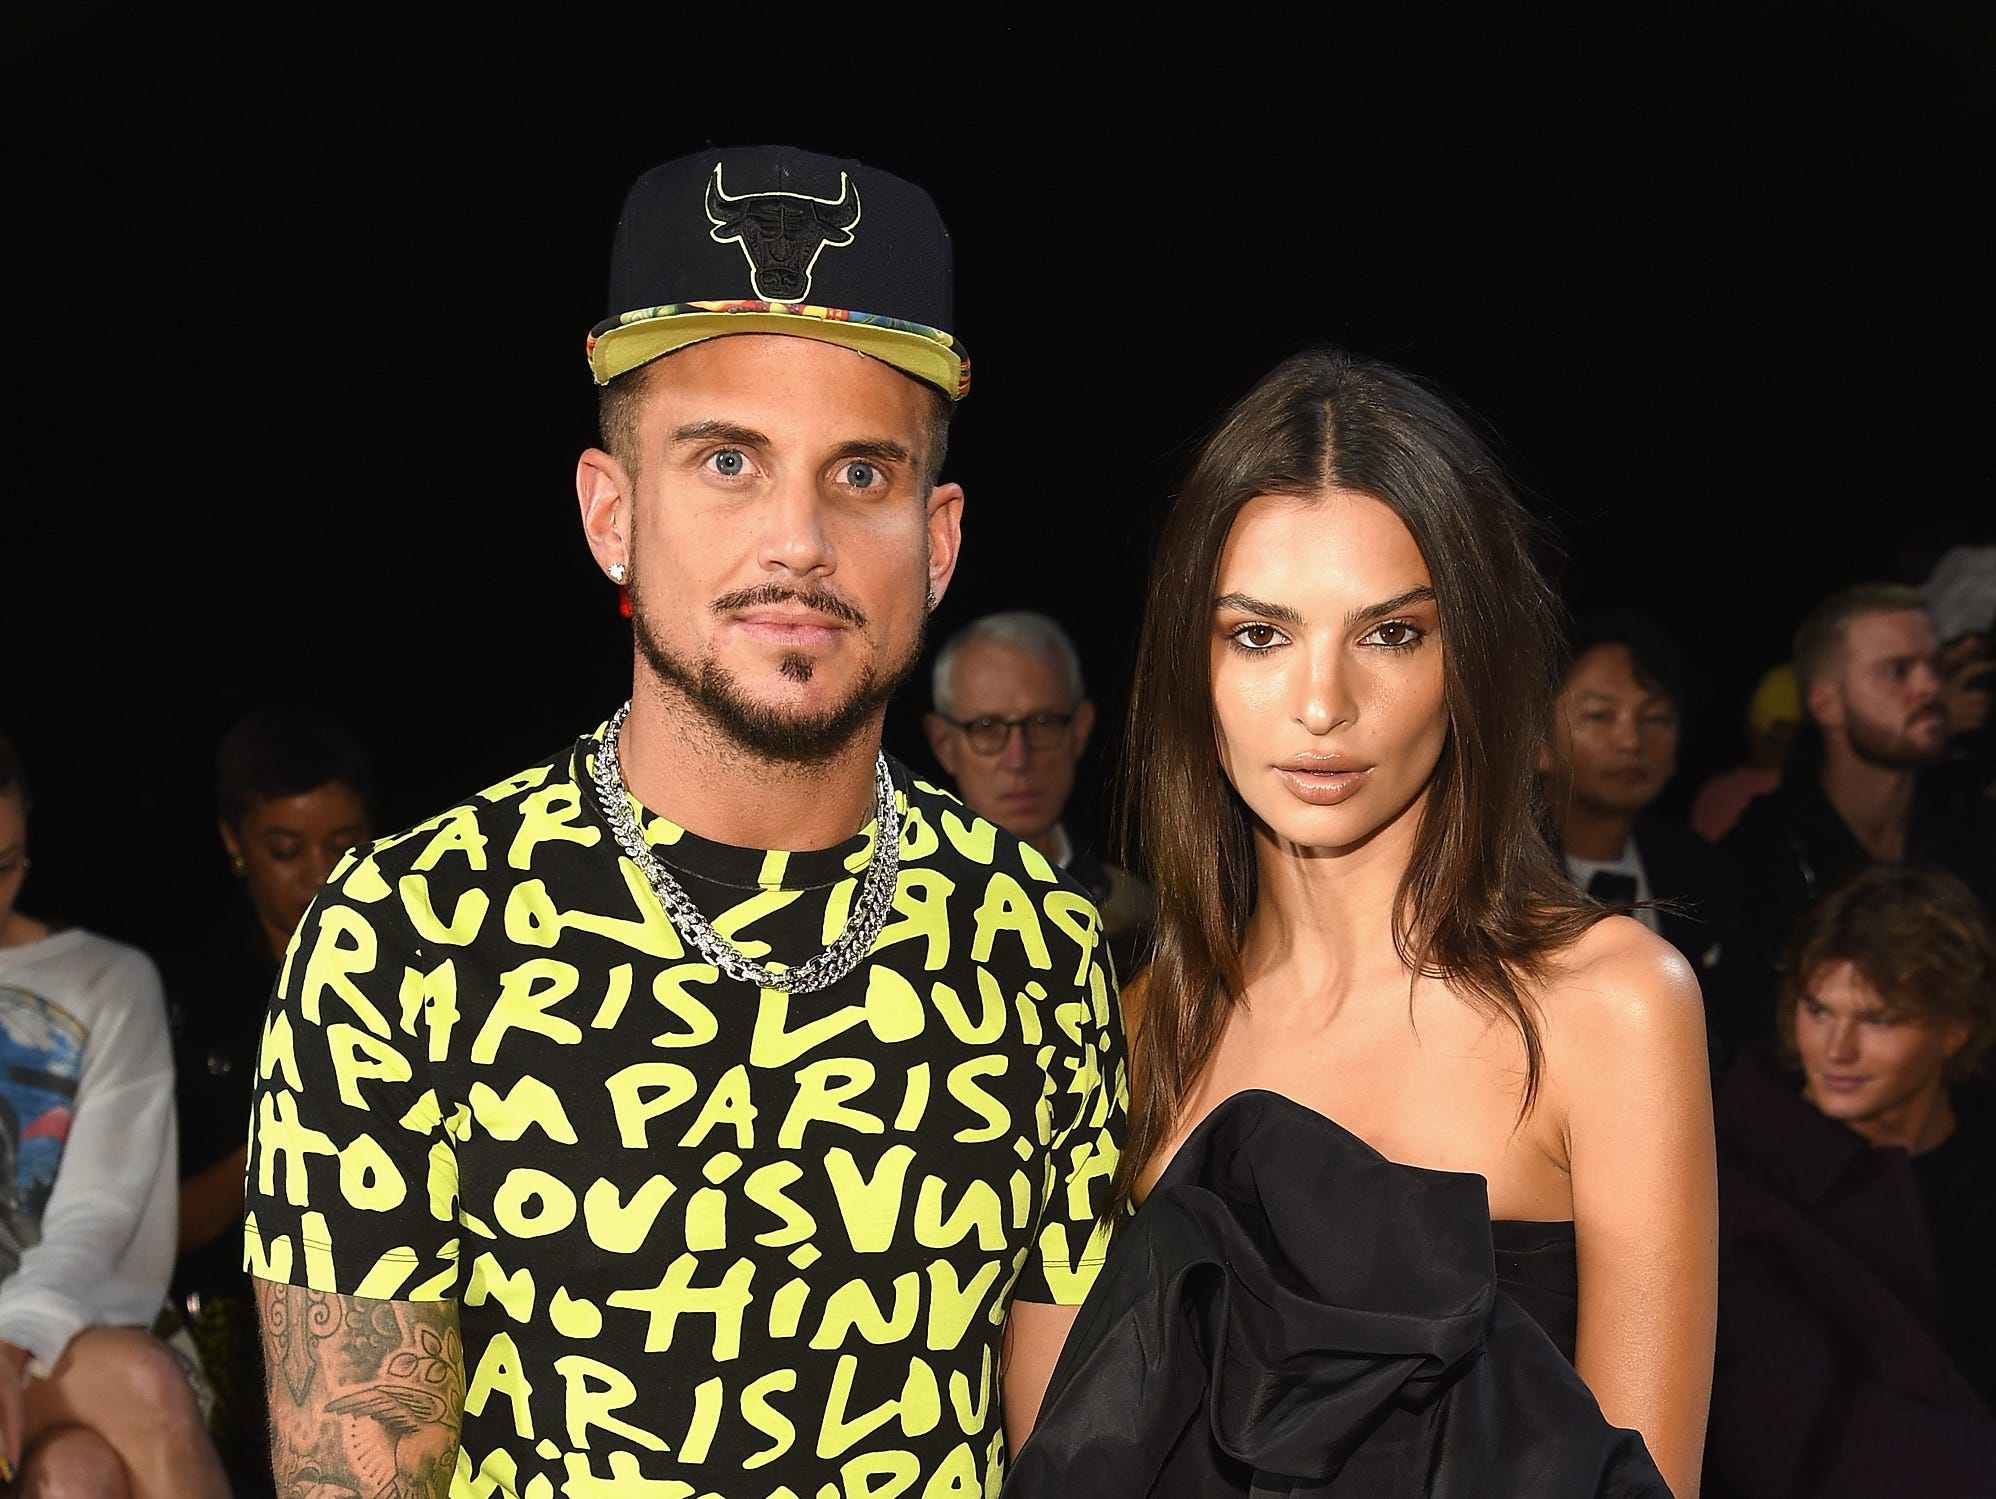 NEW YORK, NY - SEPTEMBER 12: Charly DeFrancesco and Emily Ratajkowski attend the Marc Jacobs Spring 2019 Runway Front Row during New York Fashion Week: The Shows  at Park Avenue Armory on September 12, 2018 in New York City.  (Photo by Dimitrios Kambouris/Getty Images for Marc Jacobs) ORG XMIT: 775216977 ORIG FILE ID: 1032345898